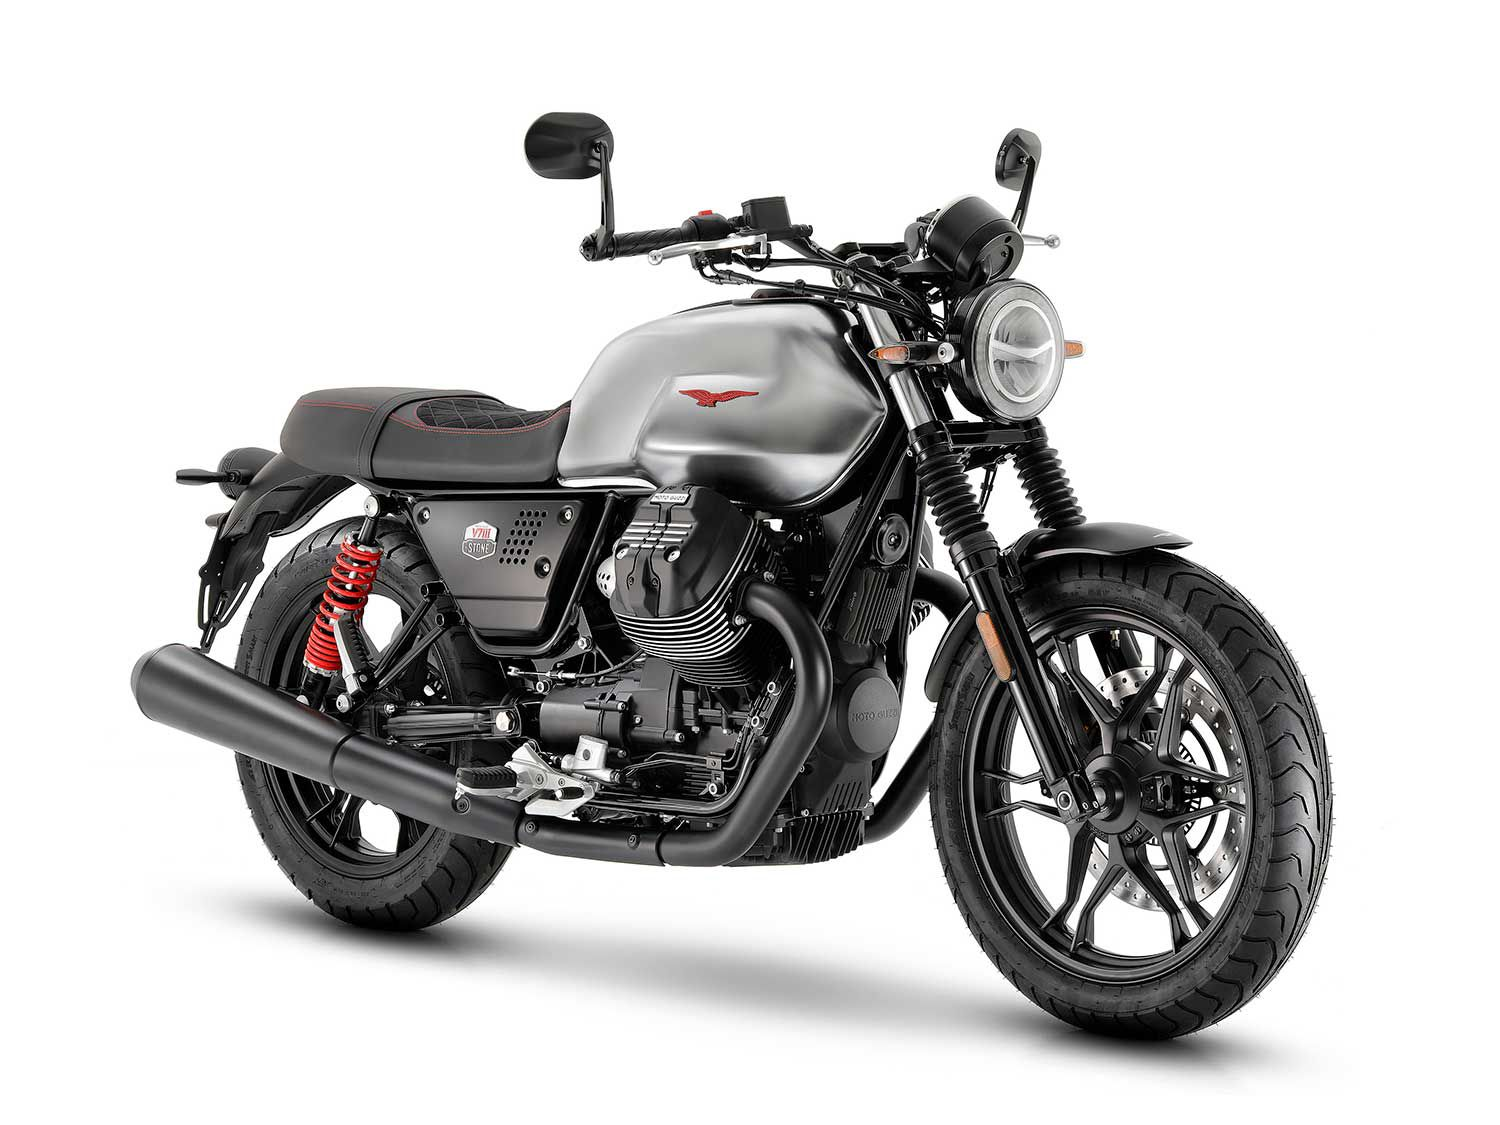 Only 750 examples of the Stone S will be produced for 2020, an ode to its 744cc transverse twin engine that's been powering Moto Guzzis for decades.